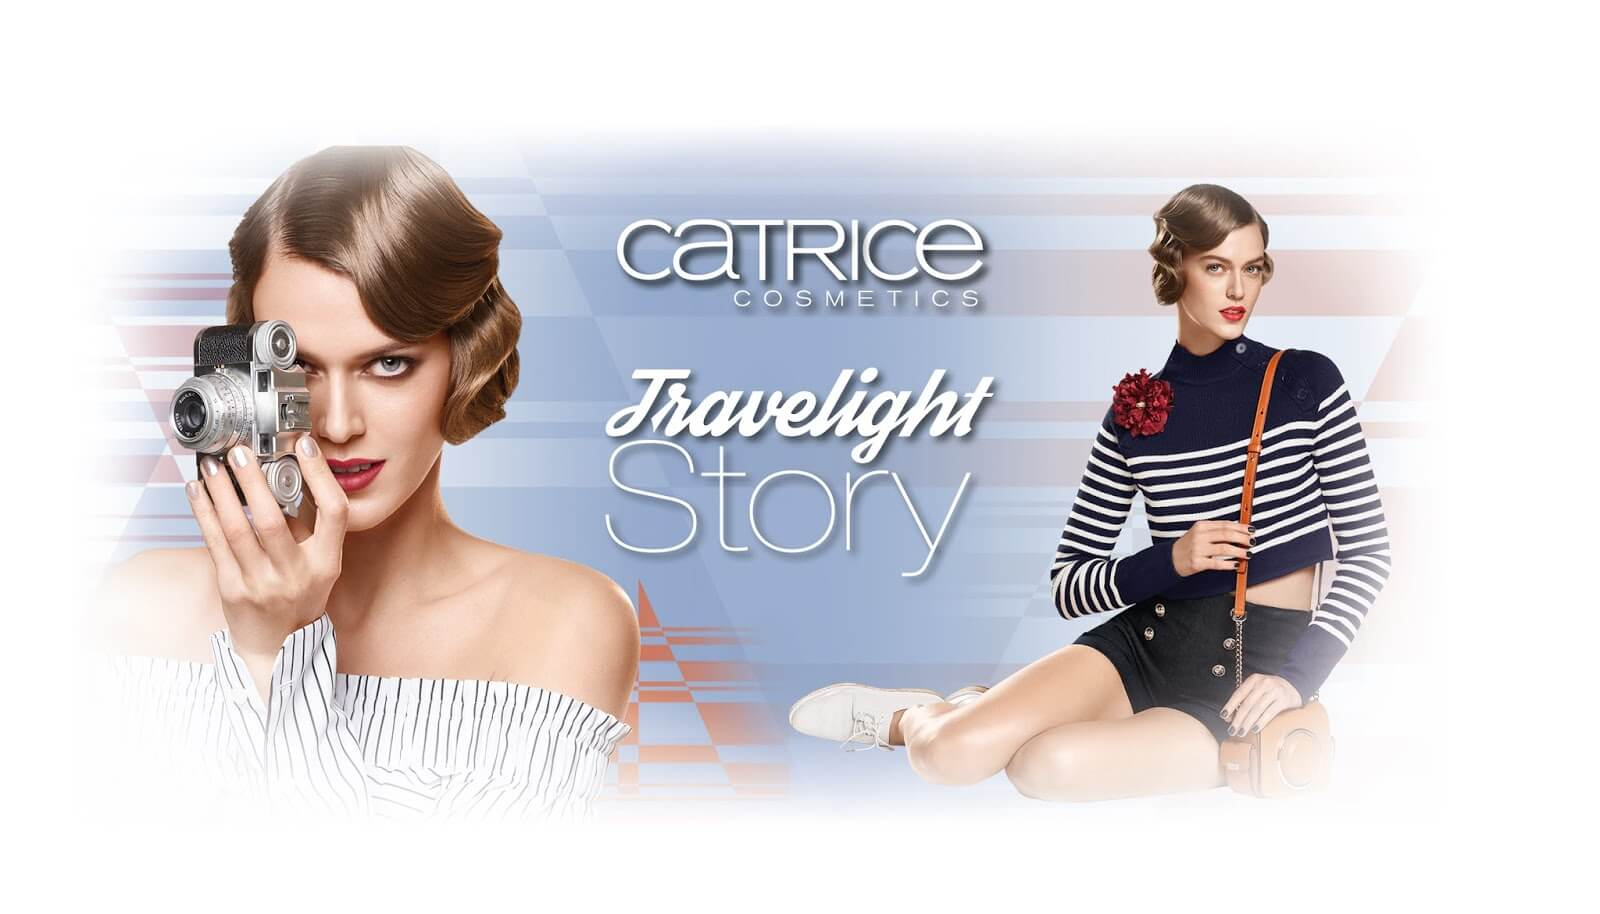 travelight story catrice